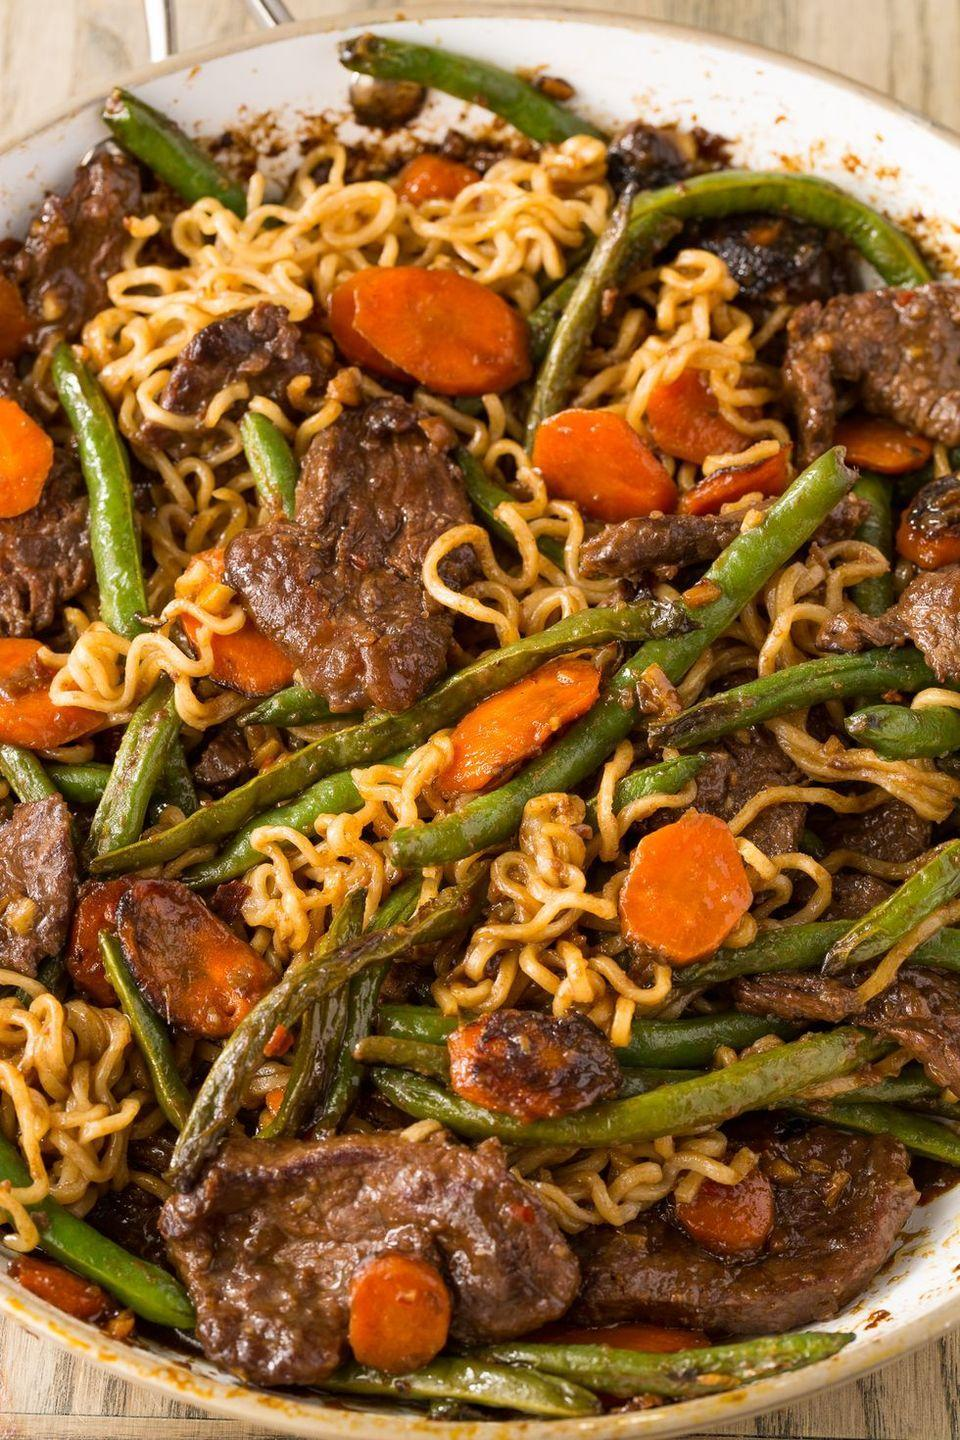 """<p>This stir-fry has a ginger-garlic kick that you won't be able to resist.</p><p>Get the <a href=""""http://www.delish.com/uk/cooking/recipes/a28756691/ginger-beef-stir-fry-with-ramen-recipe/"""" rel=""""nofollow noopener"""" target=""""_blank"""" data-ylk=""""slk:Ginger Beef Stir Fry with Ramen"""" class=""""link rapid-noclick-resp"""">Ginger Beef Stir Fry with Ramen</a> recipe.</p>"""